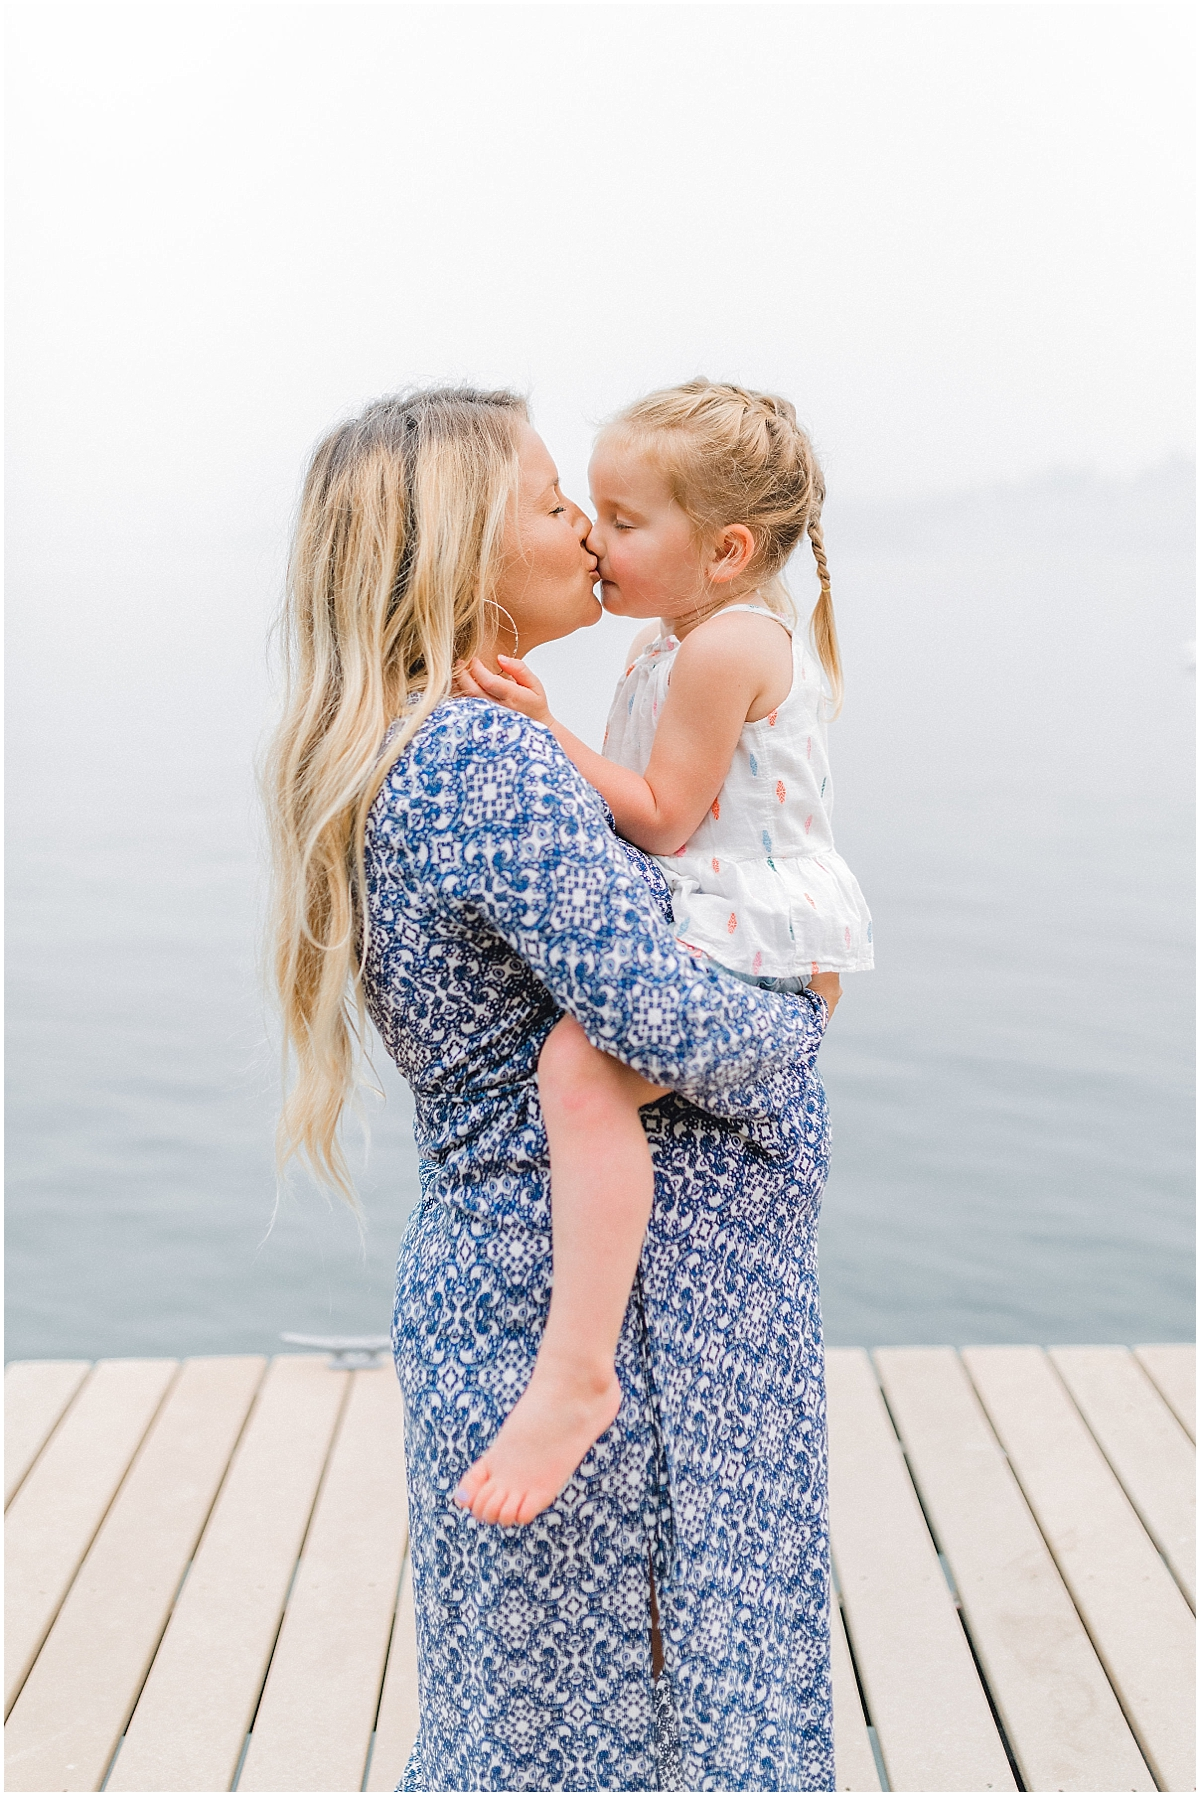 Emma Rose Company | PNW Family Portrait Photographer | Light and Airy Photography Style | What to Wear to Family Pictures | Kindred Presets | Lake Chelan Wedding Portrait Photographer_0110.jpg